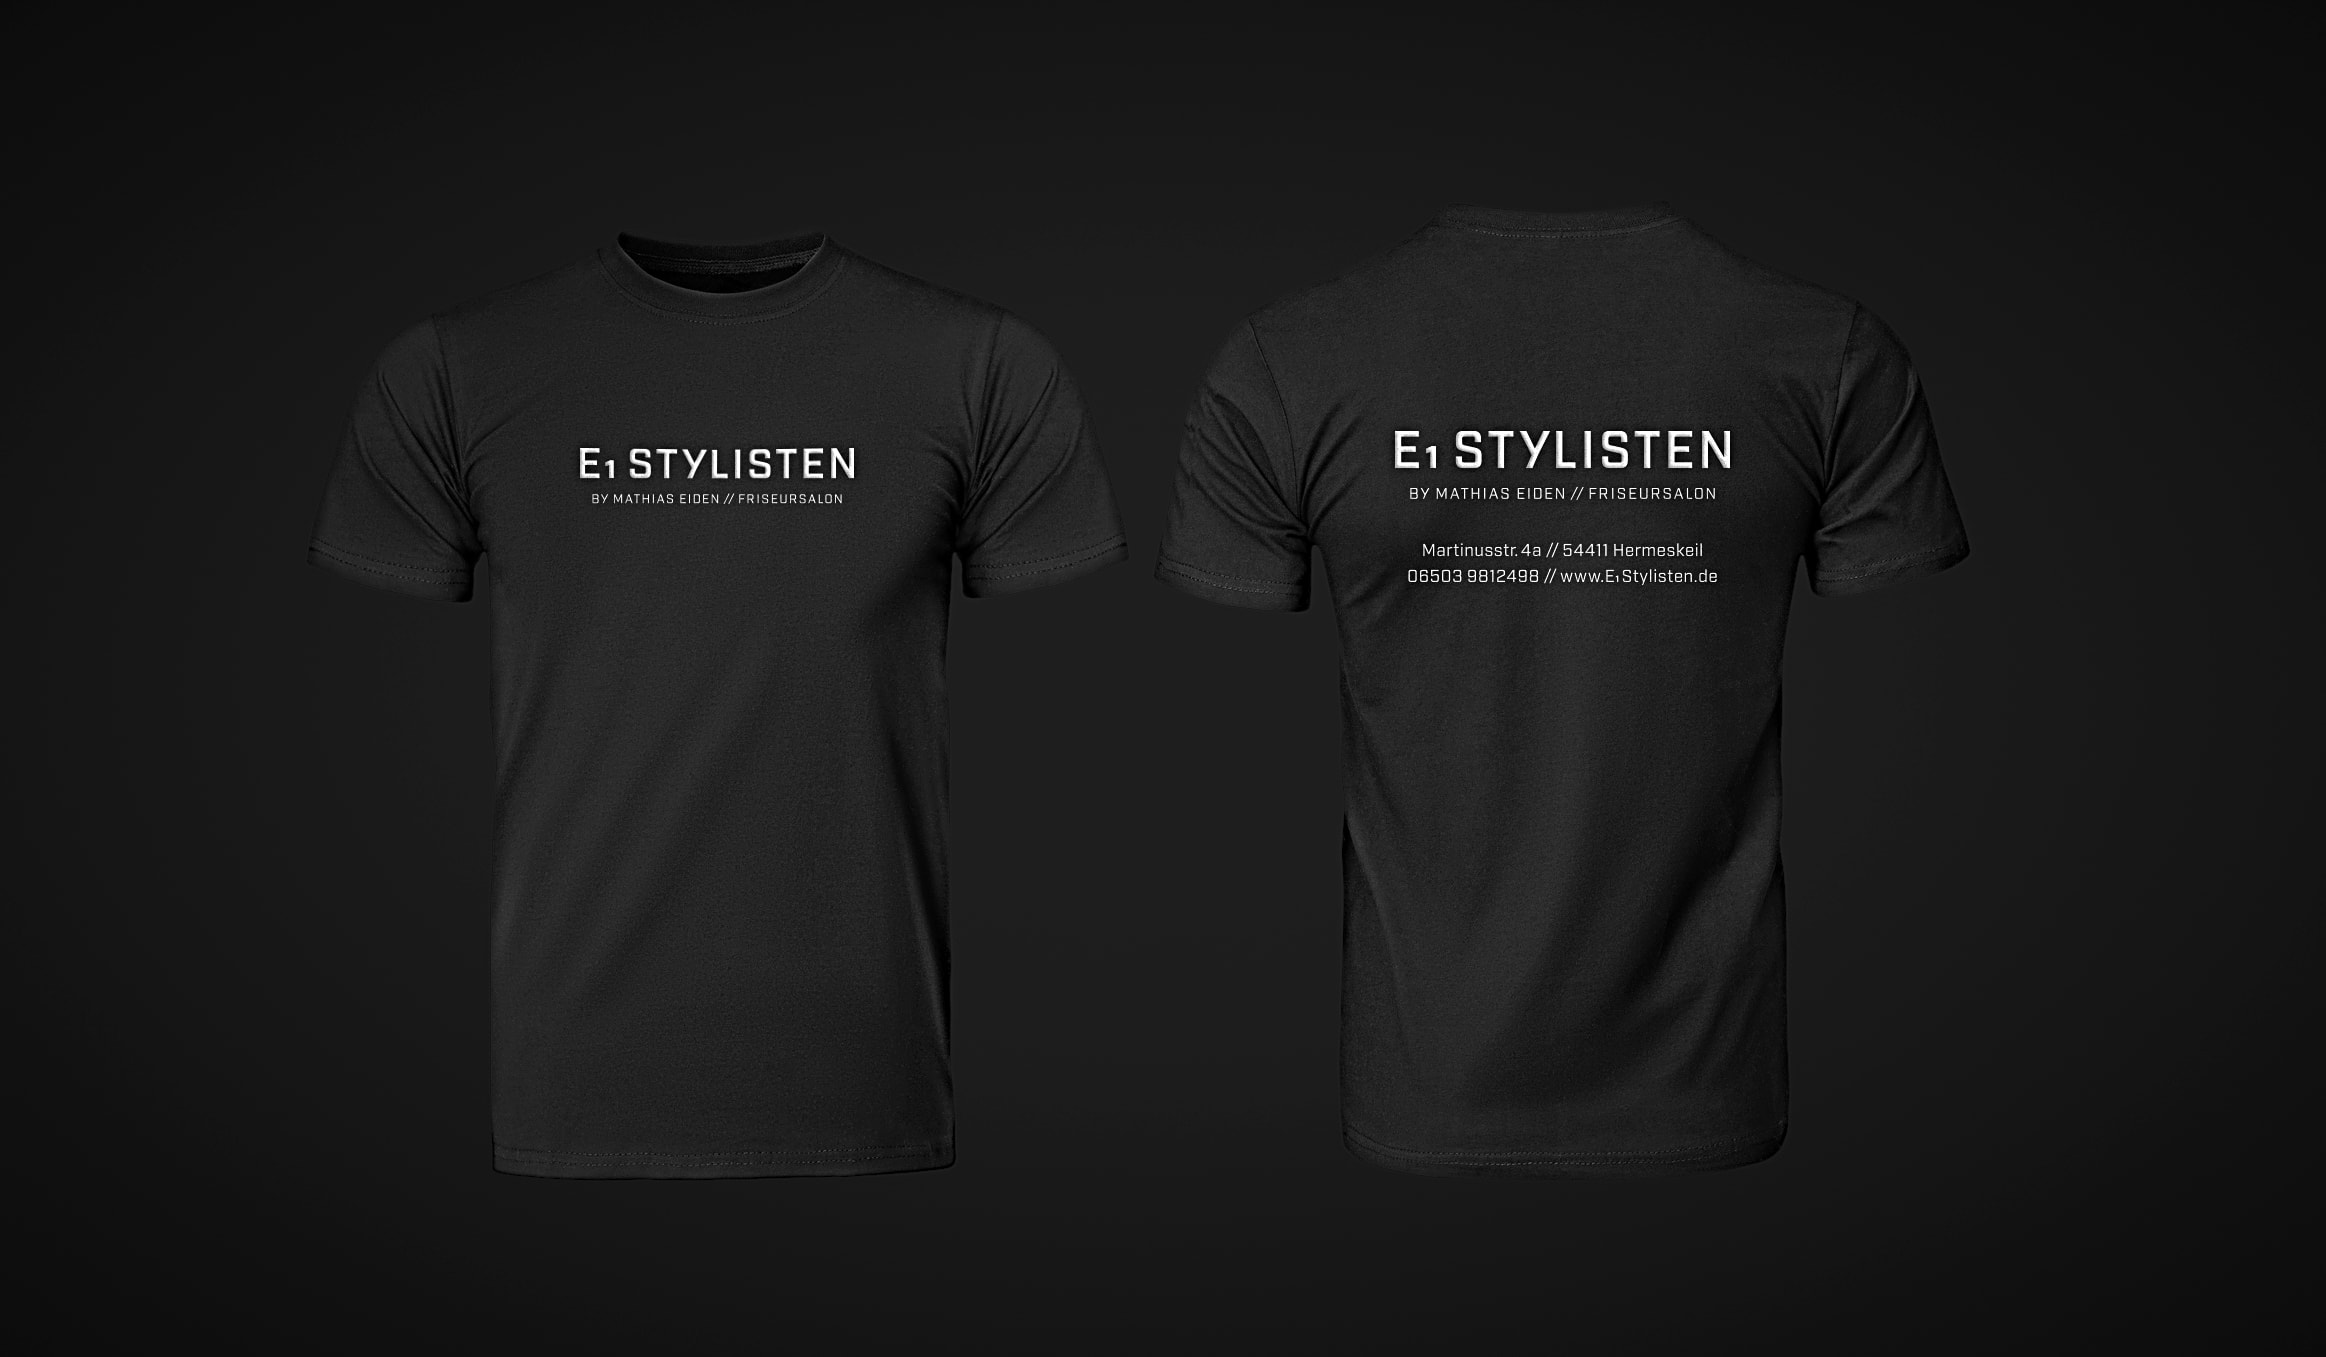 Brand Design // Konzeptarbeit ~ Corporate Design ~ T-Shirts // E1 StylistenHermeskeil/ KERSTIN MICHELS – DESIGN/ Designagentur/ Werbeagentur/Grafikdesign/ Kommunikationsdesign/ Hochwald/ Trier/ Rheinland-Pfalz/ Werbung/ Design